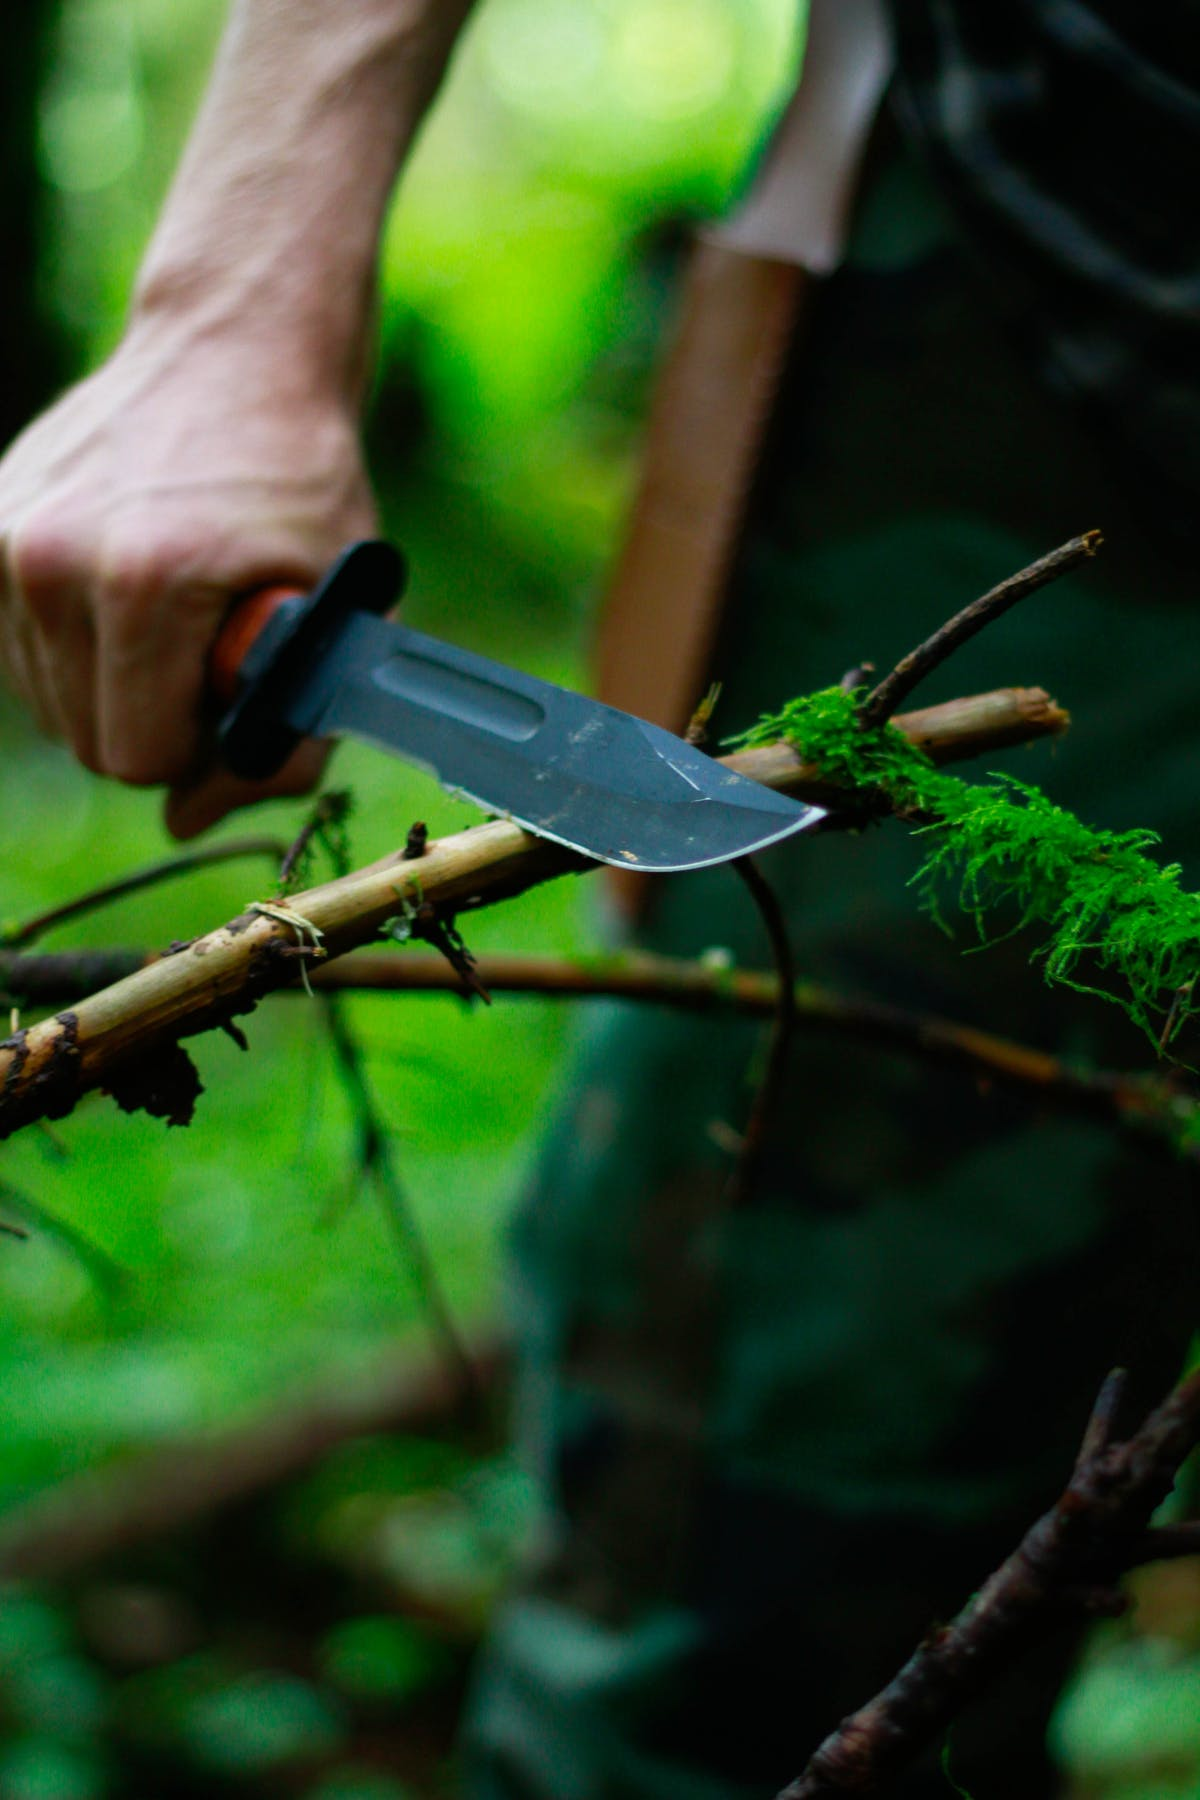 A man with a survival knife cuts a branch - Photo by 2 Bro's Media on Unsplash